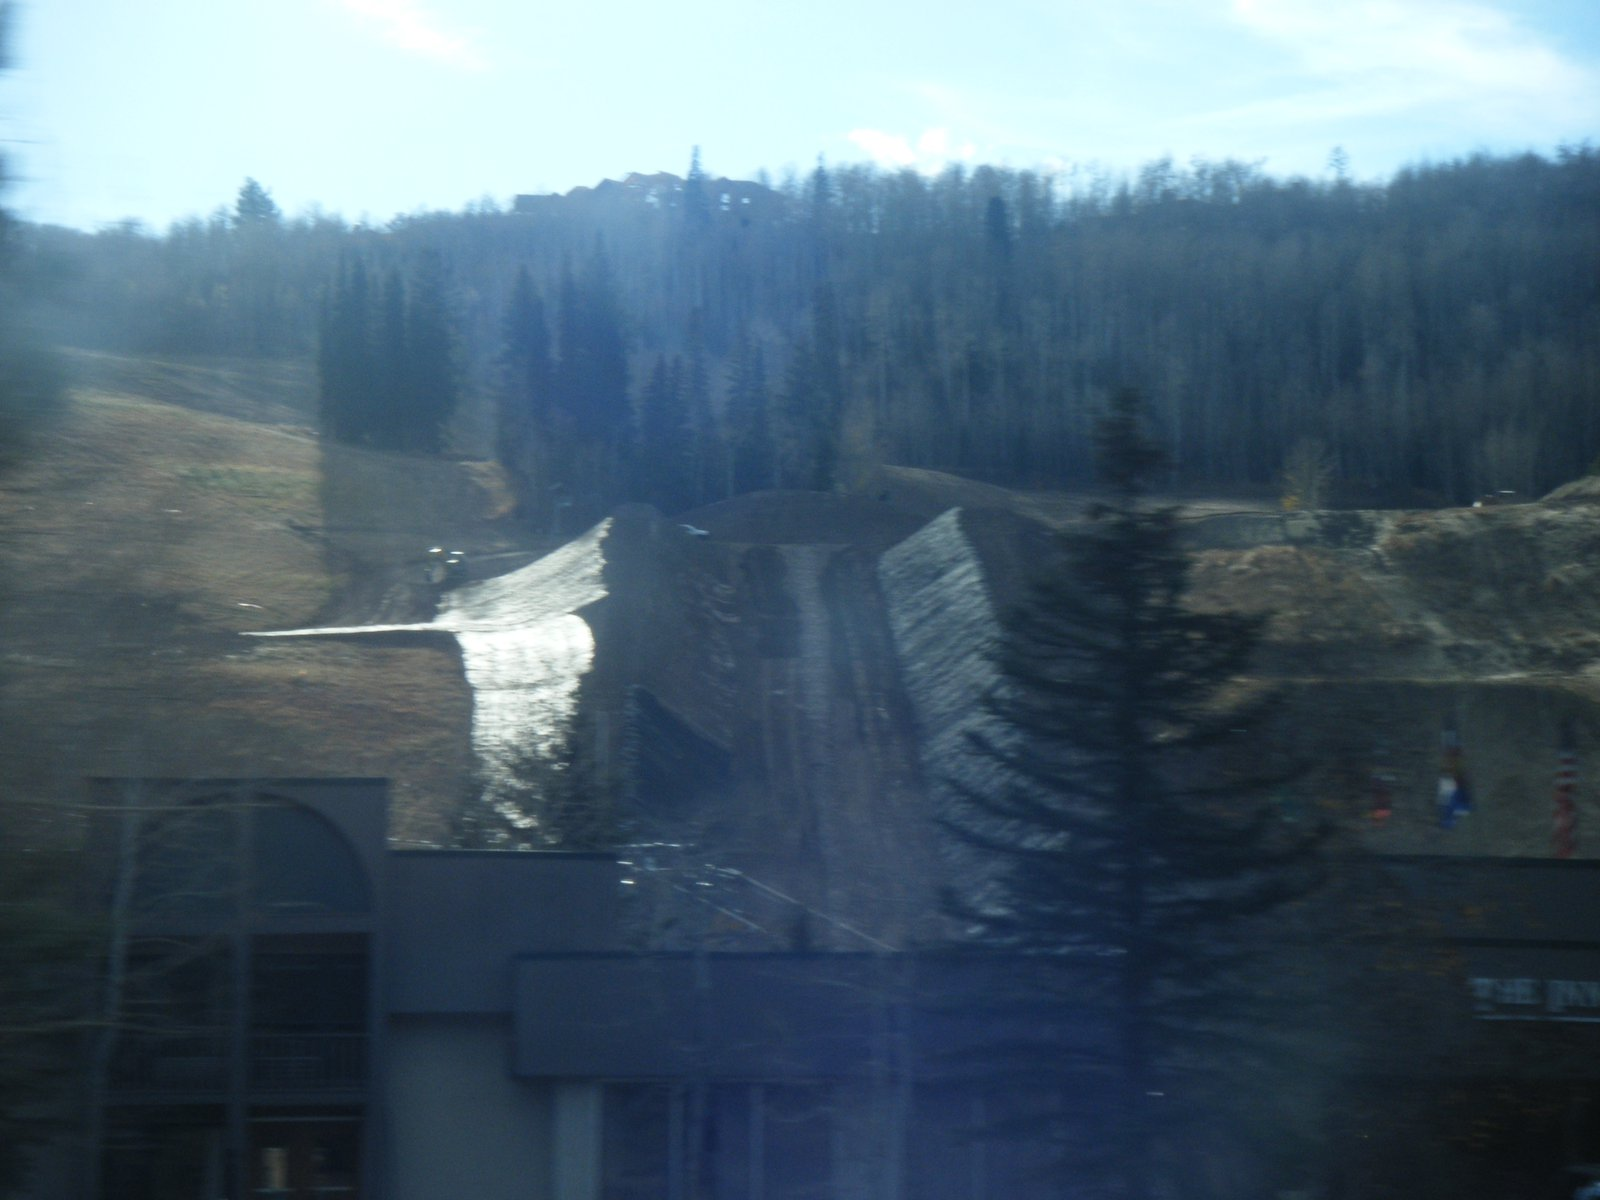 X games pipe without snow